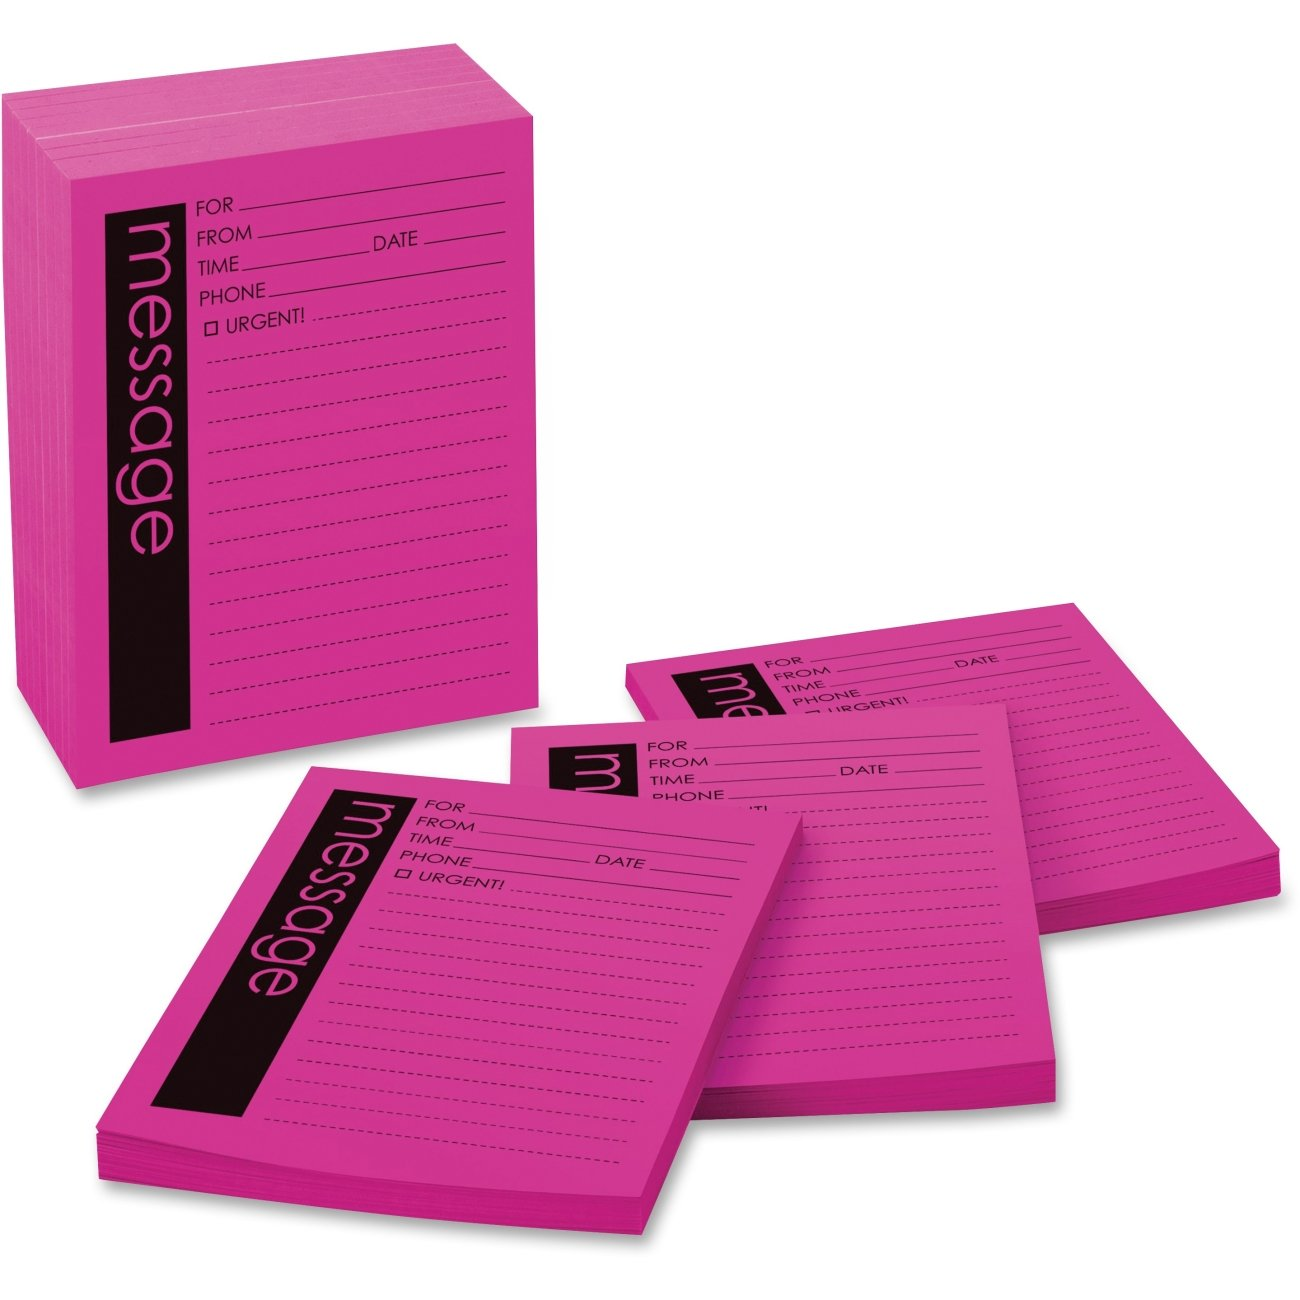 3M Post-it Telephone Message Pad MMM 7662-12 MMM7662 (Box of 3 Packs) by Post-it